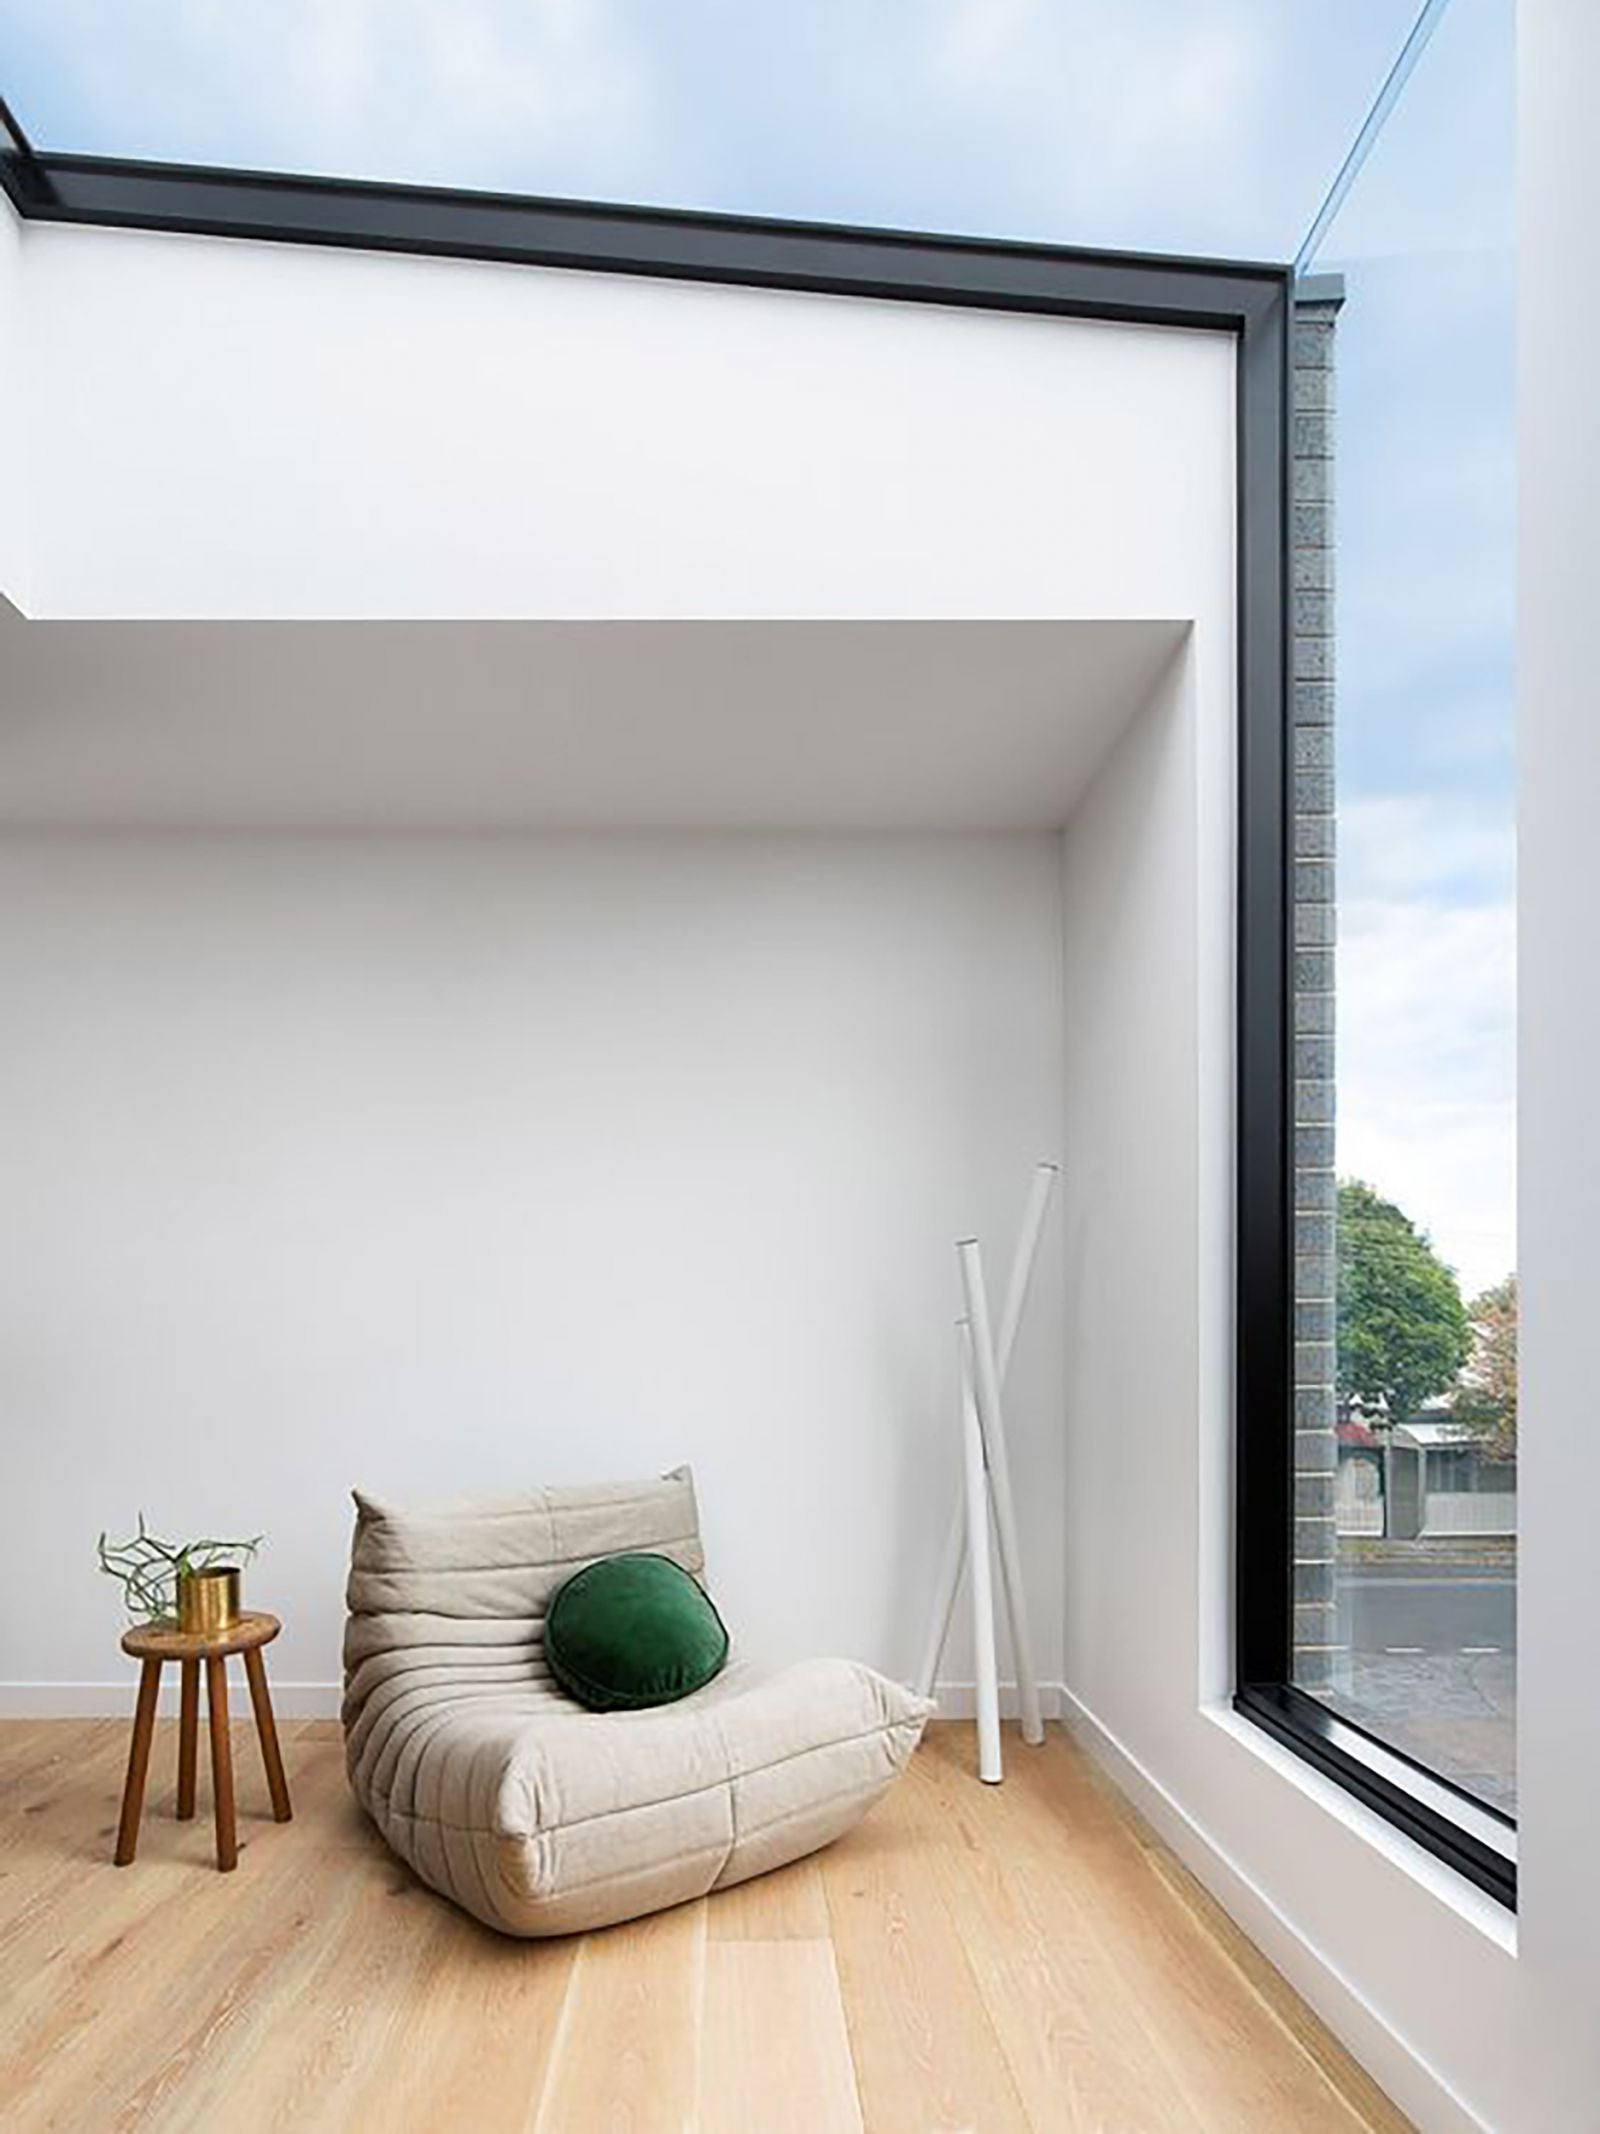 Statement window that goes up into a skylight over a large armchair